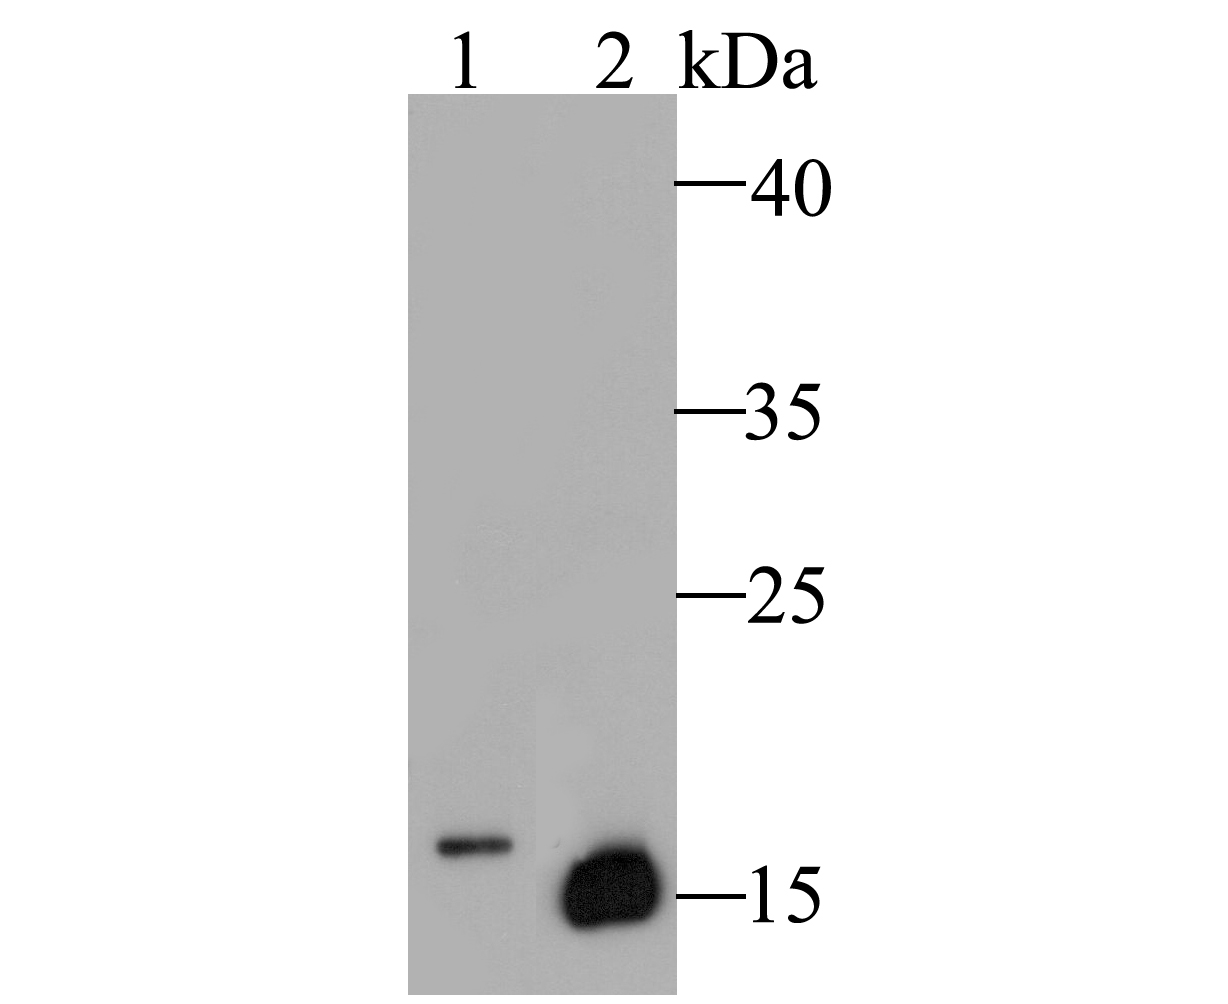 Western blot analysis of Myoglobin on different lysates. Proteins were transferred to a PVDF membrane and blocked with 5% BSA in PBS for 1 hour at room temperature. The primary antibody (ER1901-17, 1/500) was used in 5% BSA at room temperature for 2 hours. Goat Anti-Rabbit IgG - HRP Secondary Antibody (HA1001) at 1:5,000 dilution was used for 1 hour at room temperature.<br />  Positive control: <br />  Lane 1: MCF-7 cell lysate<br />  Lane 2: Human skeletal muscle tissue lysate